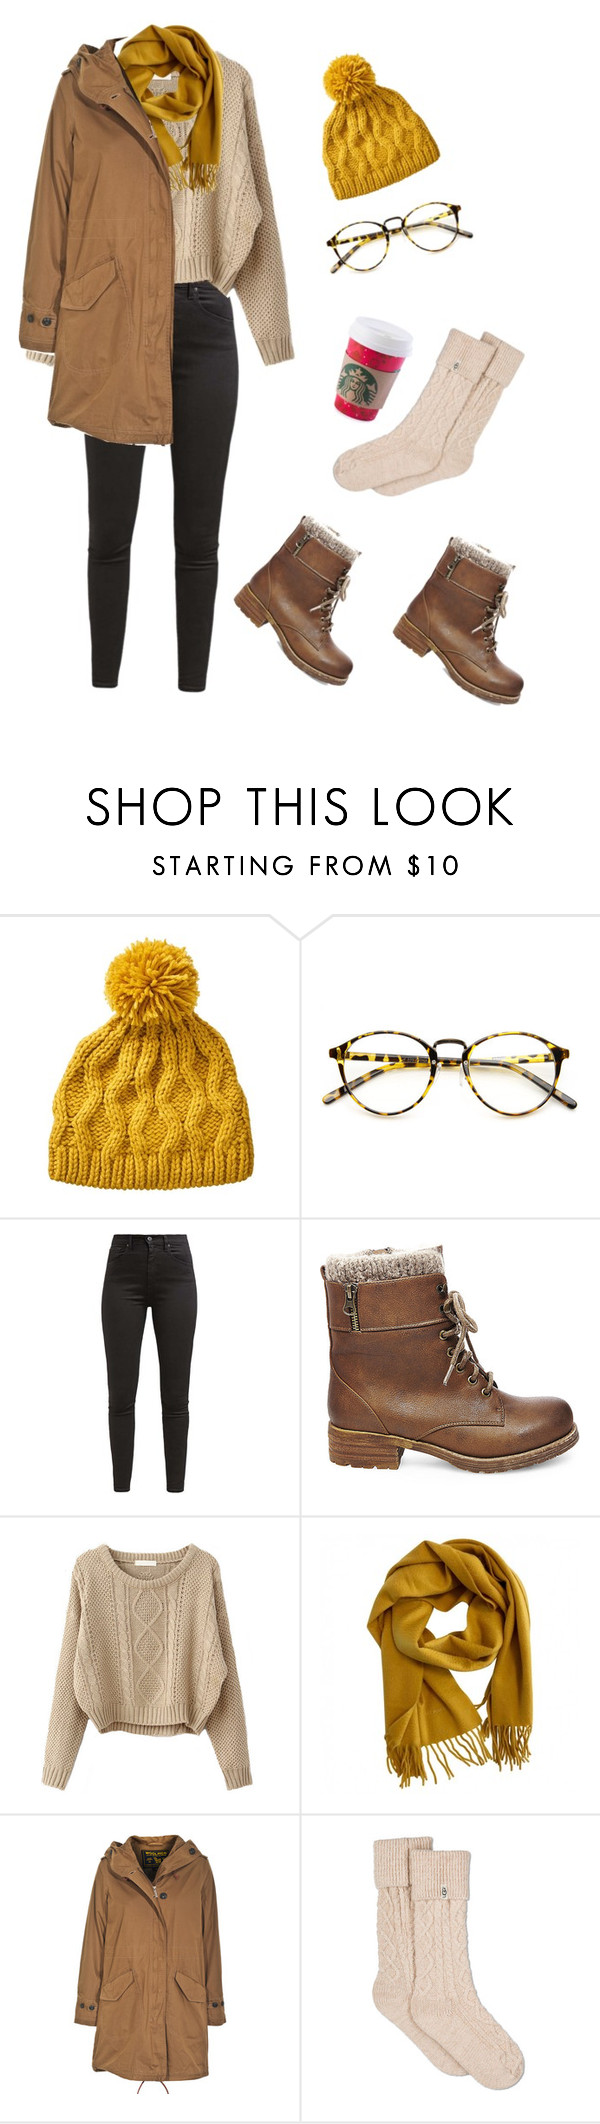 """Untitled #595"" by vangophaway ❤ liked on Polyvore featuring INDIE HAIR, Levi's, Steve Madden, Hermès, Woolrich and UGG"